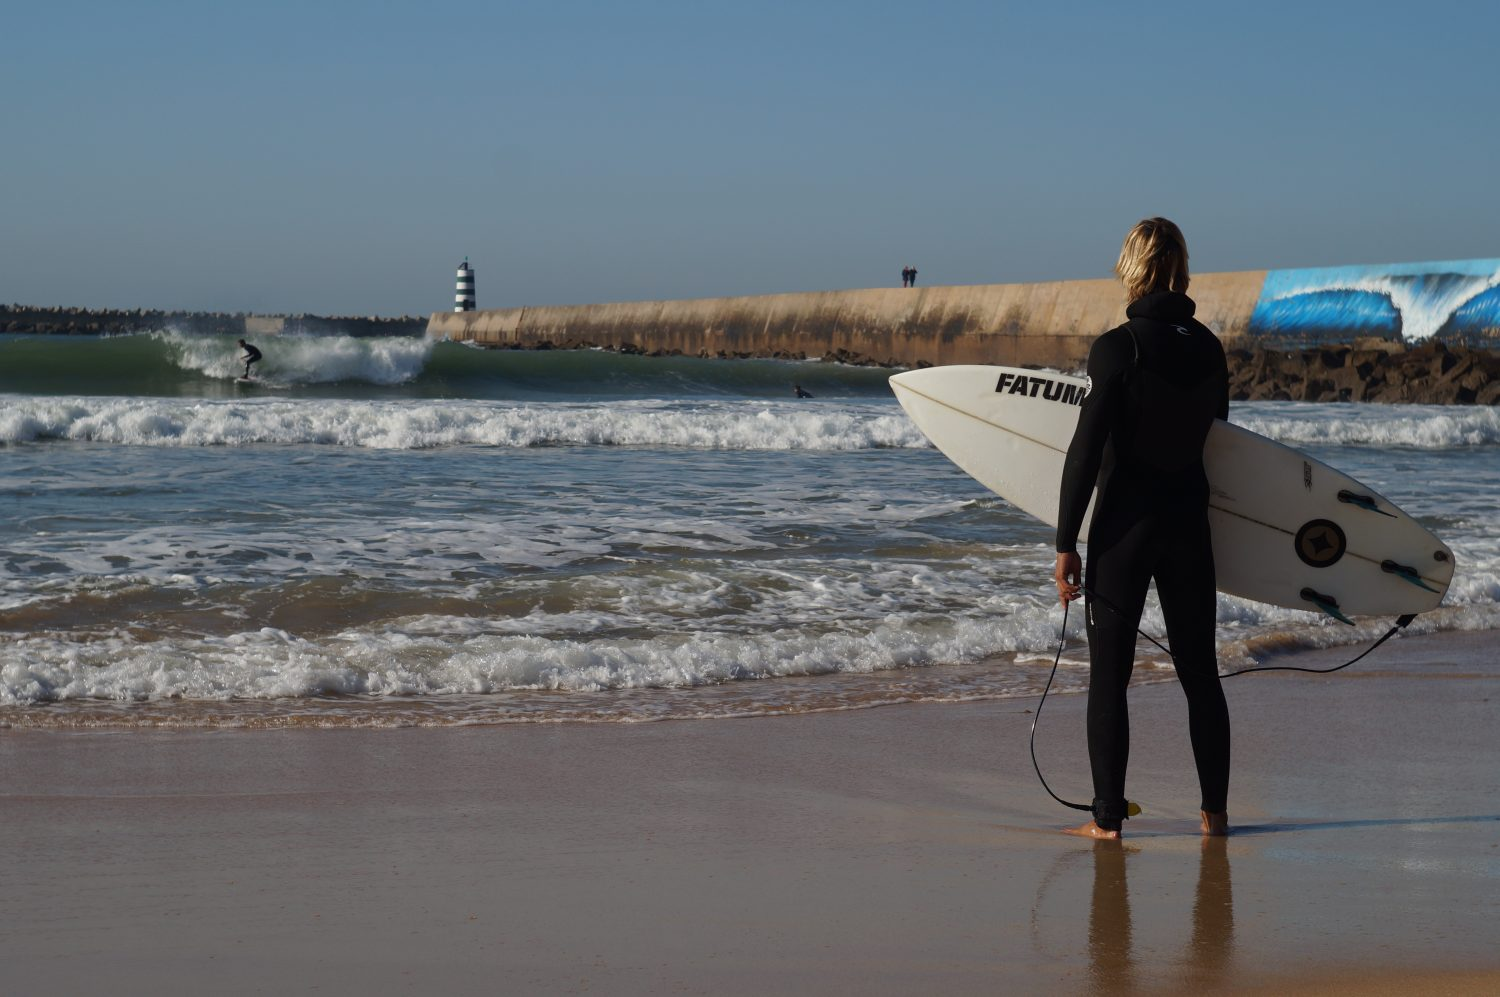 Surfing Portugal is back